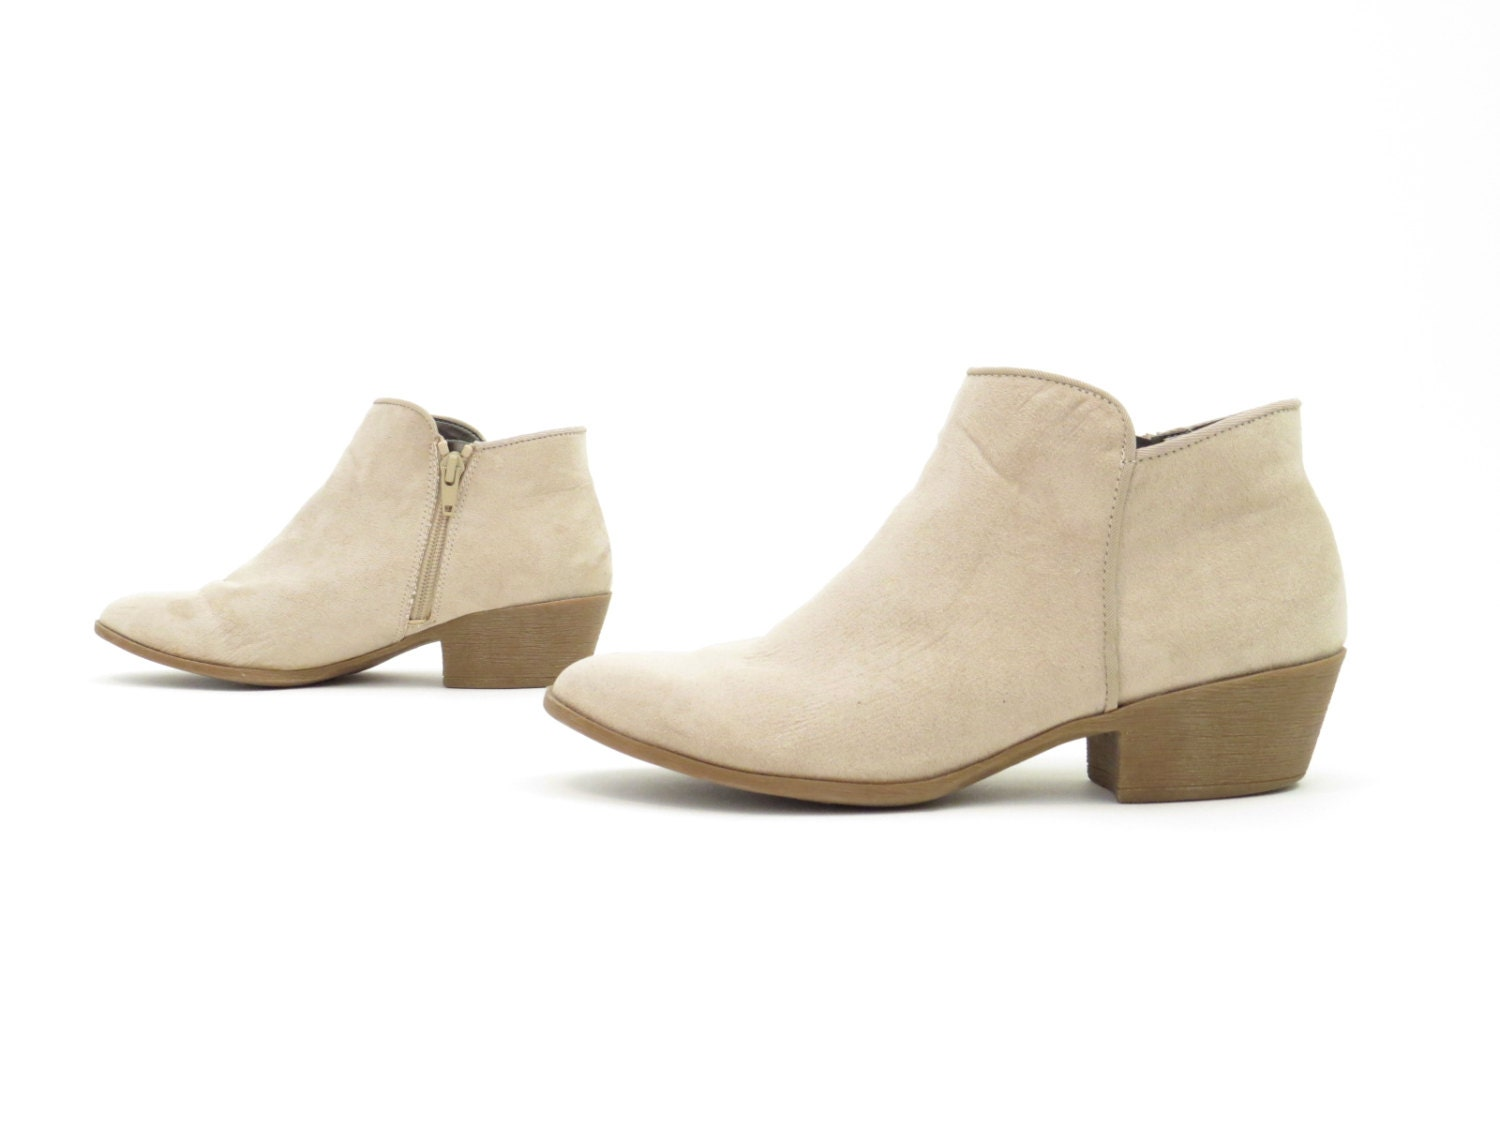 suede chelsea boots women 39 s booties ankle boots beige by shoegazes. Black Bedroom Furniture Sets. Home Design Ideas